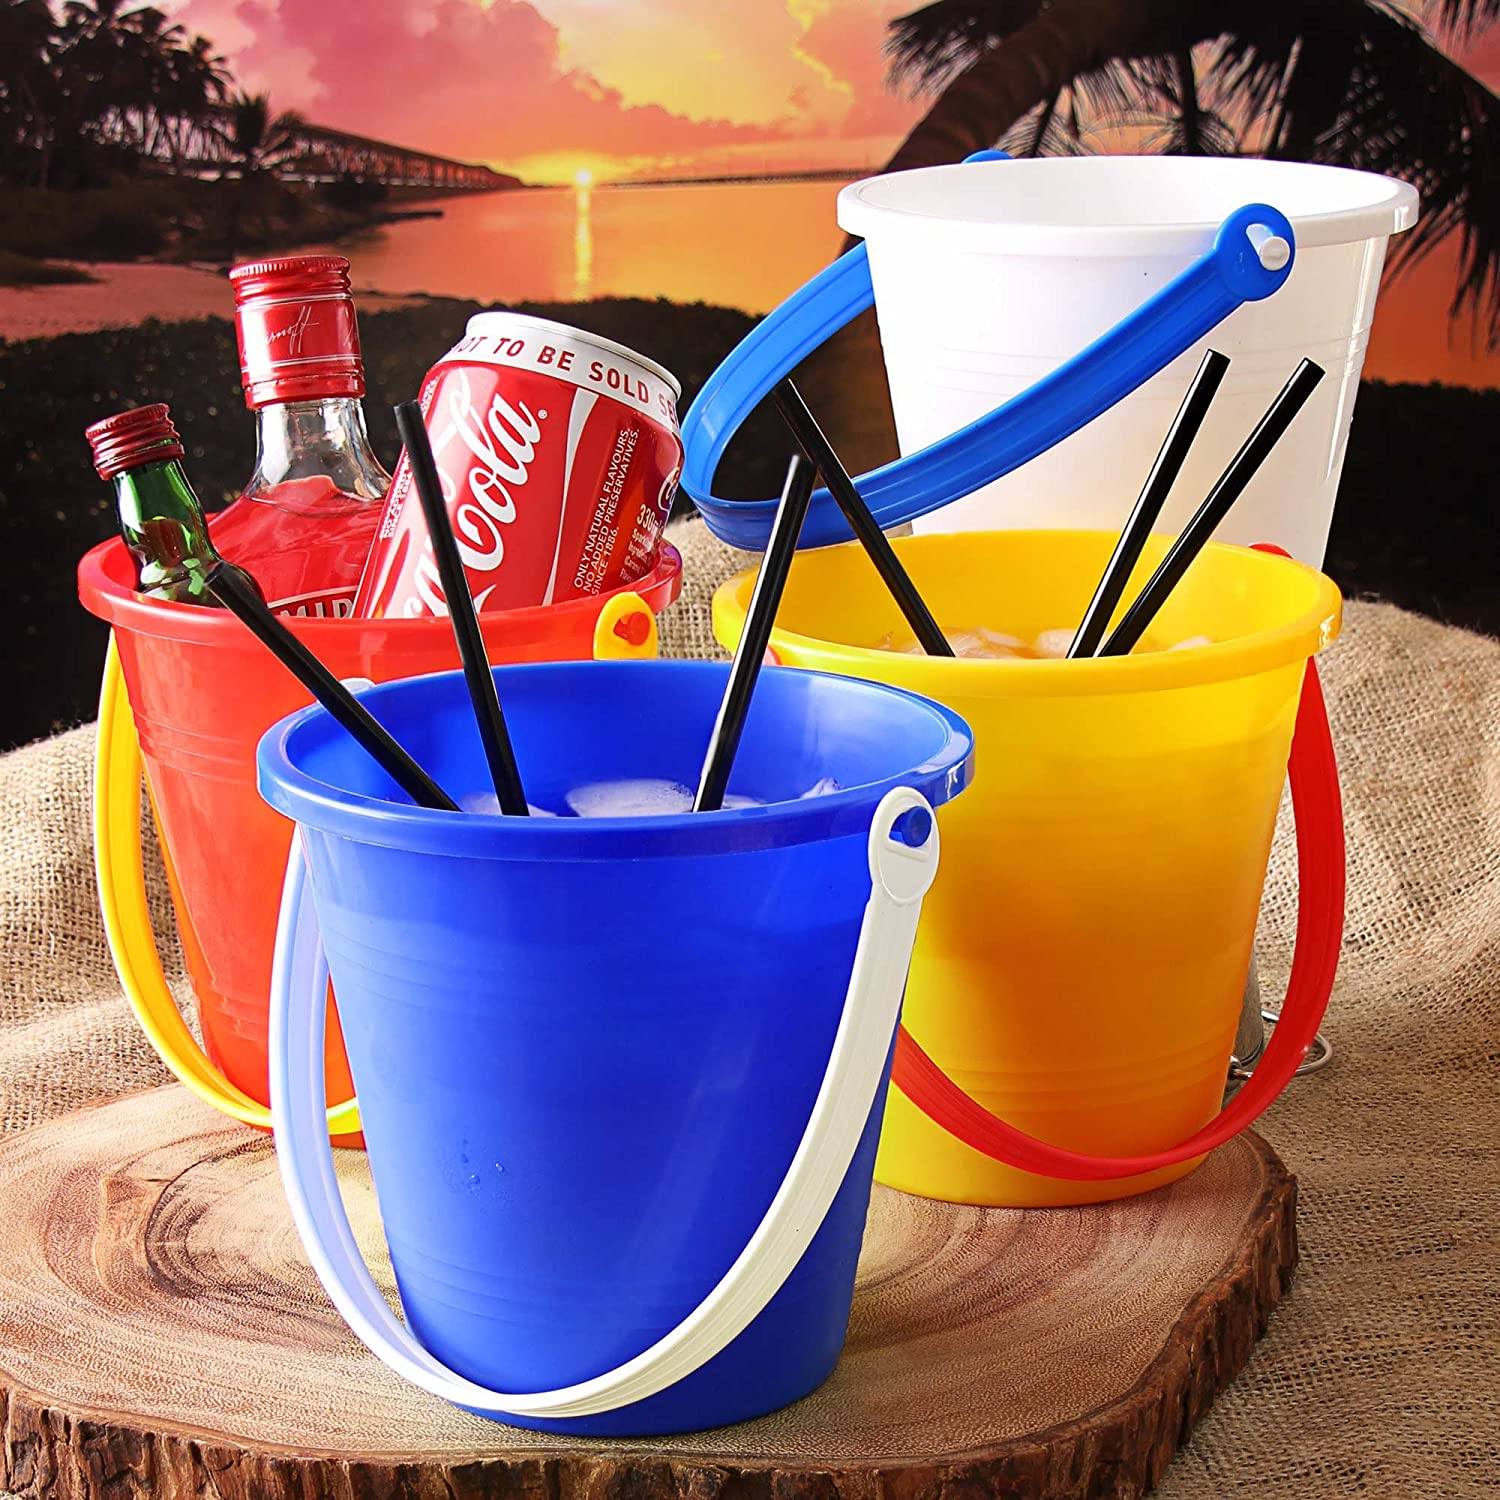 Full Moon Party Cocktail Buckets 14cm - Set of 4 - Plastic Thai ...